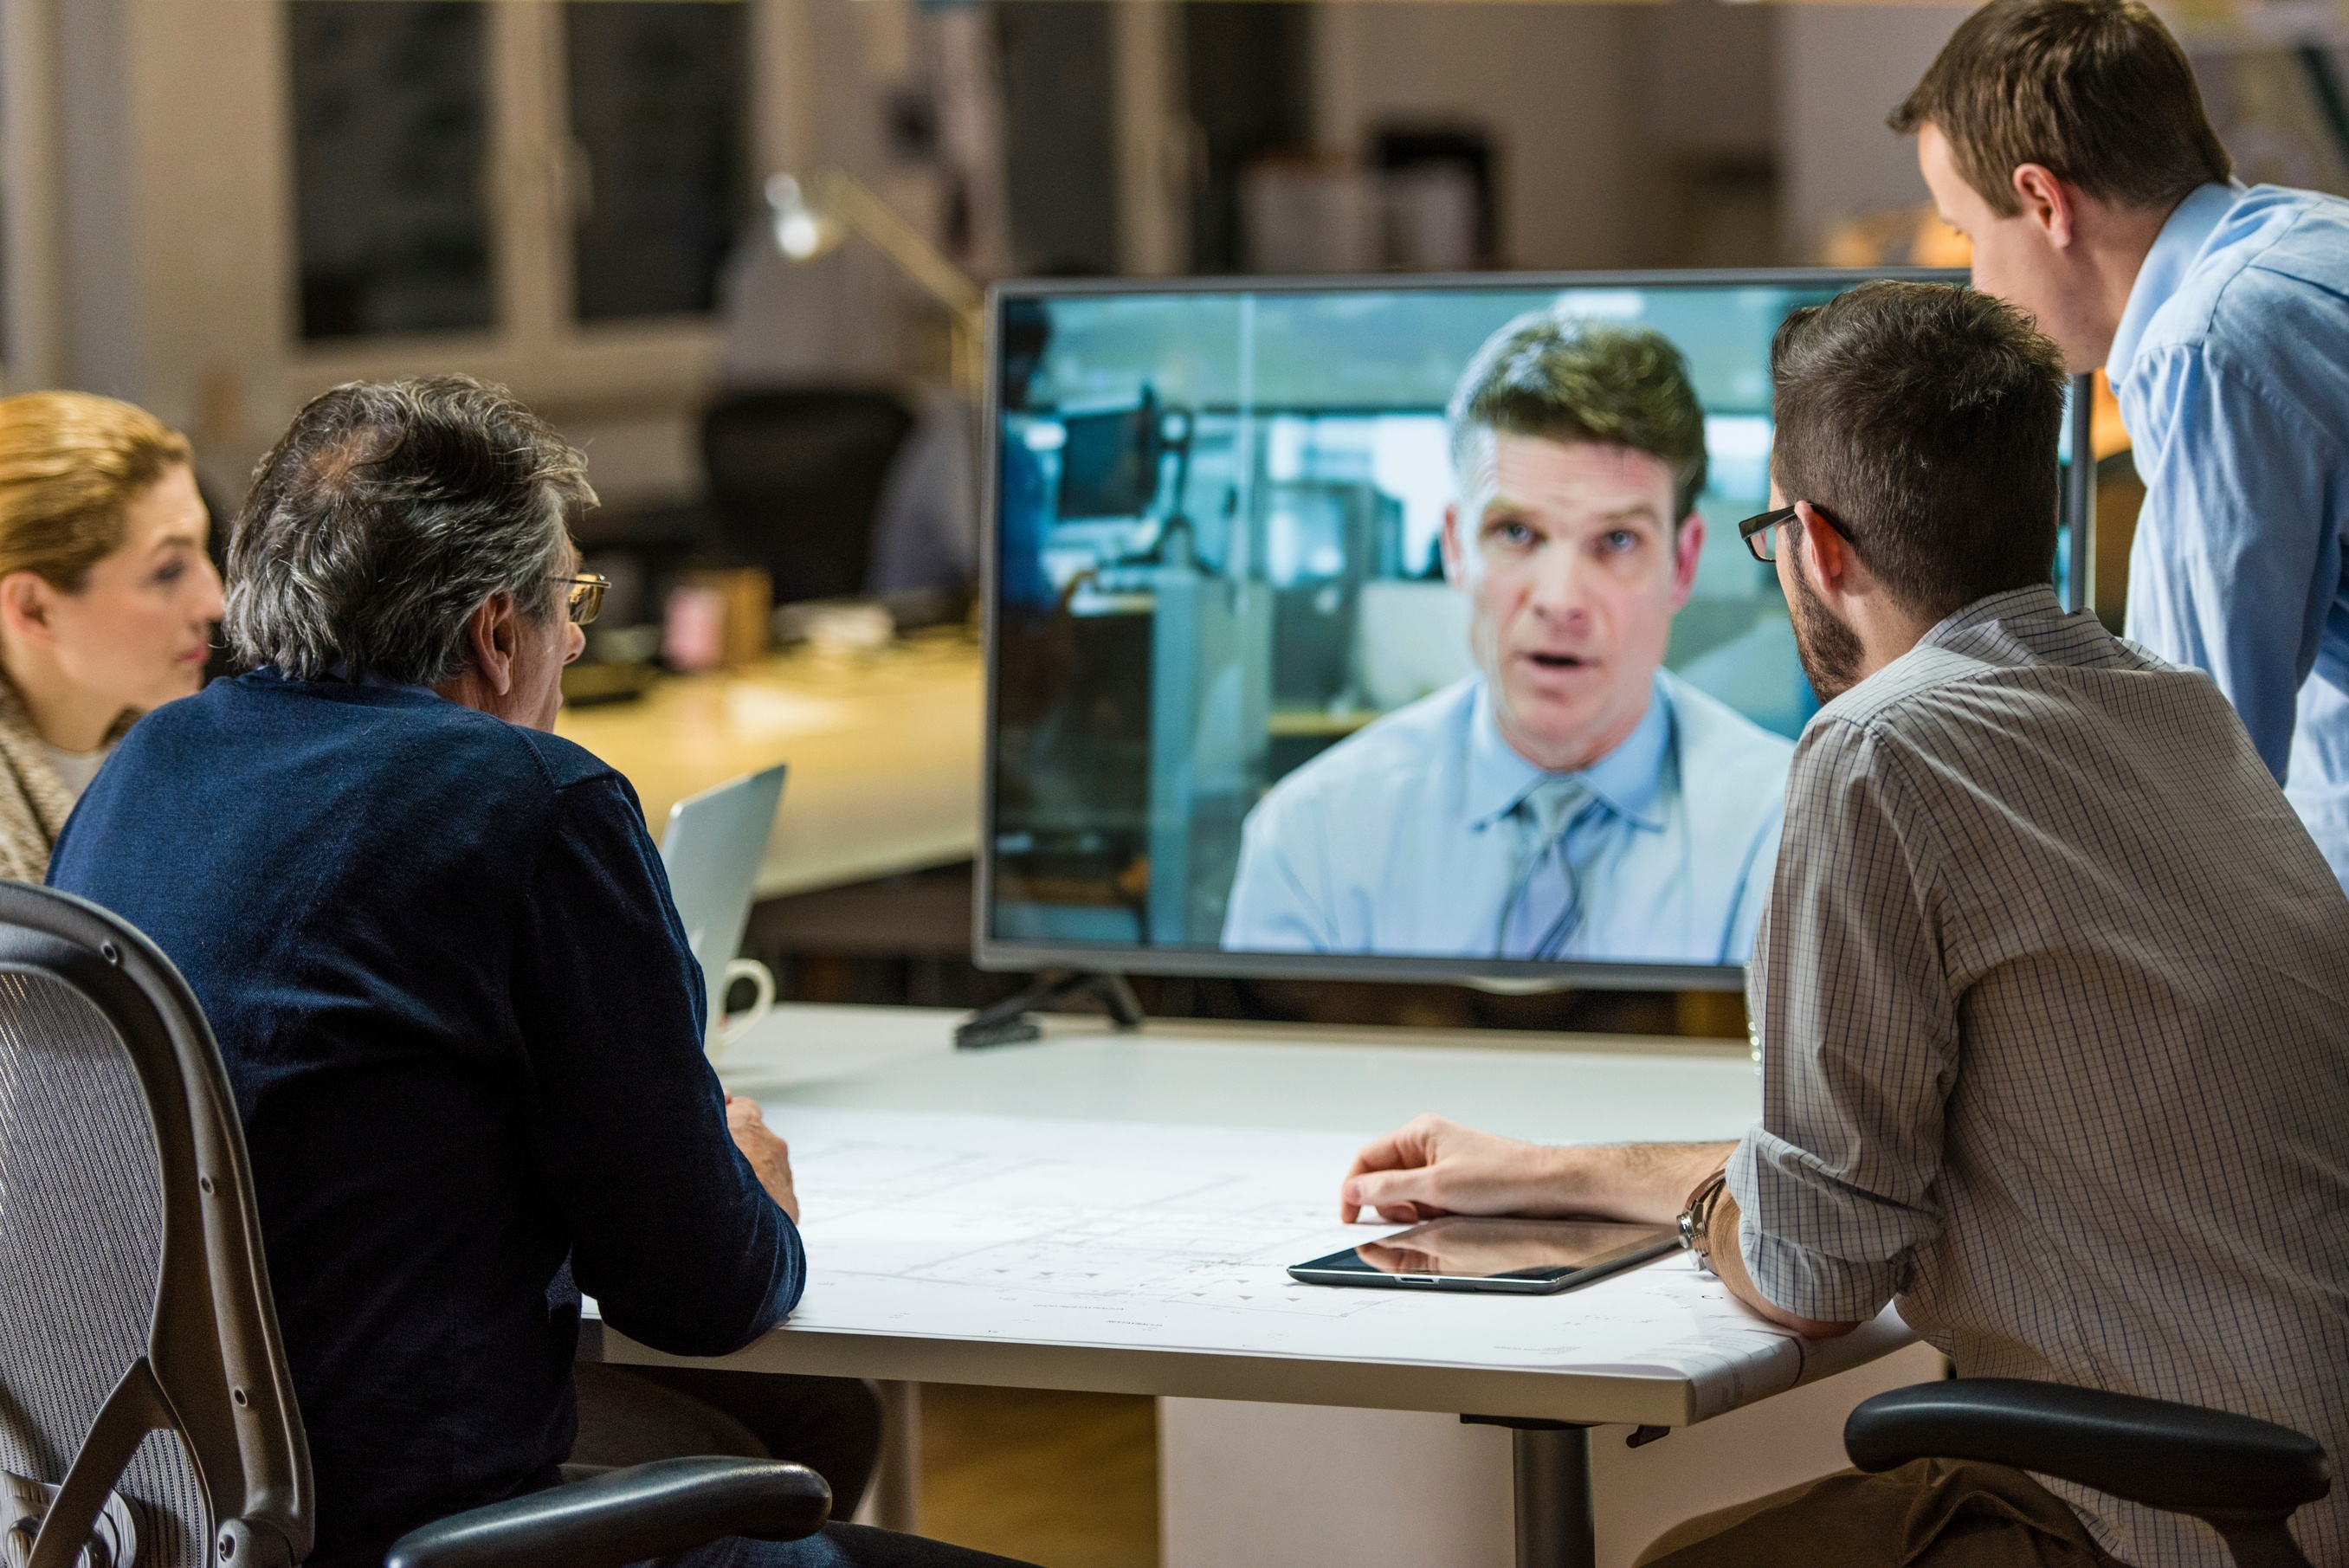 Videoconferencing allows clients to pick up body language cues